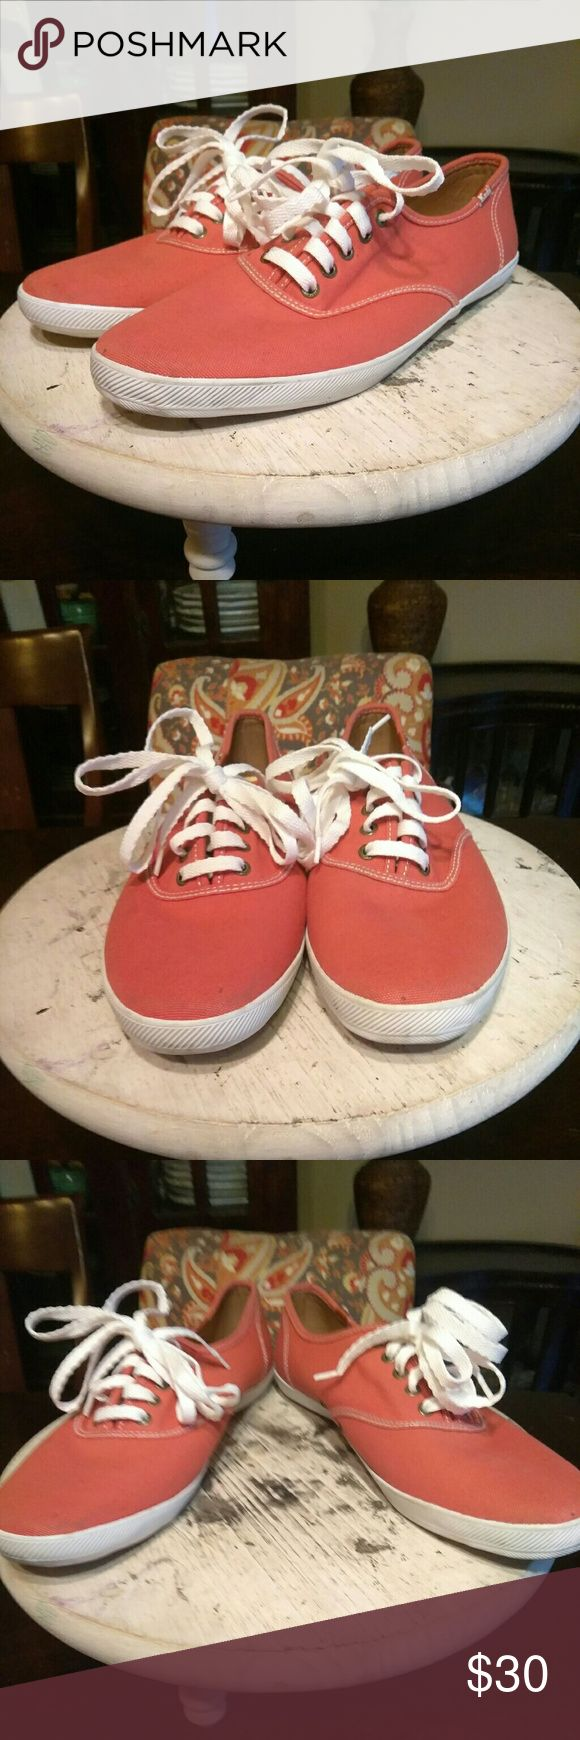 💖💜V-DAY SALE!!! Ked's-Classic Orange CLASSIC!!! Burnt orange canvas upper, original bottoms, Ked's Cushion Heel insole (super comfortable) Minimal wear on bottoms, great condition inside and out! Laces are a bit long (can be easily replaced) Keds Shoes Sneakers